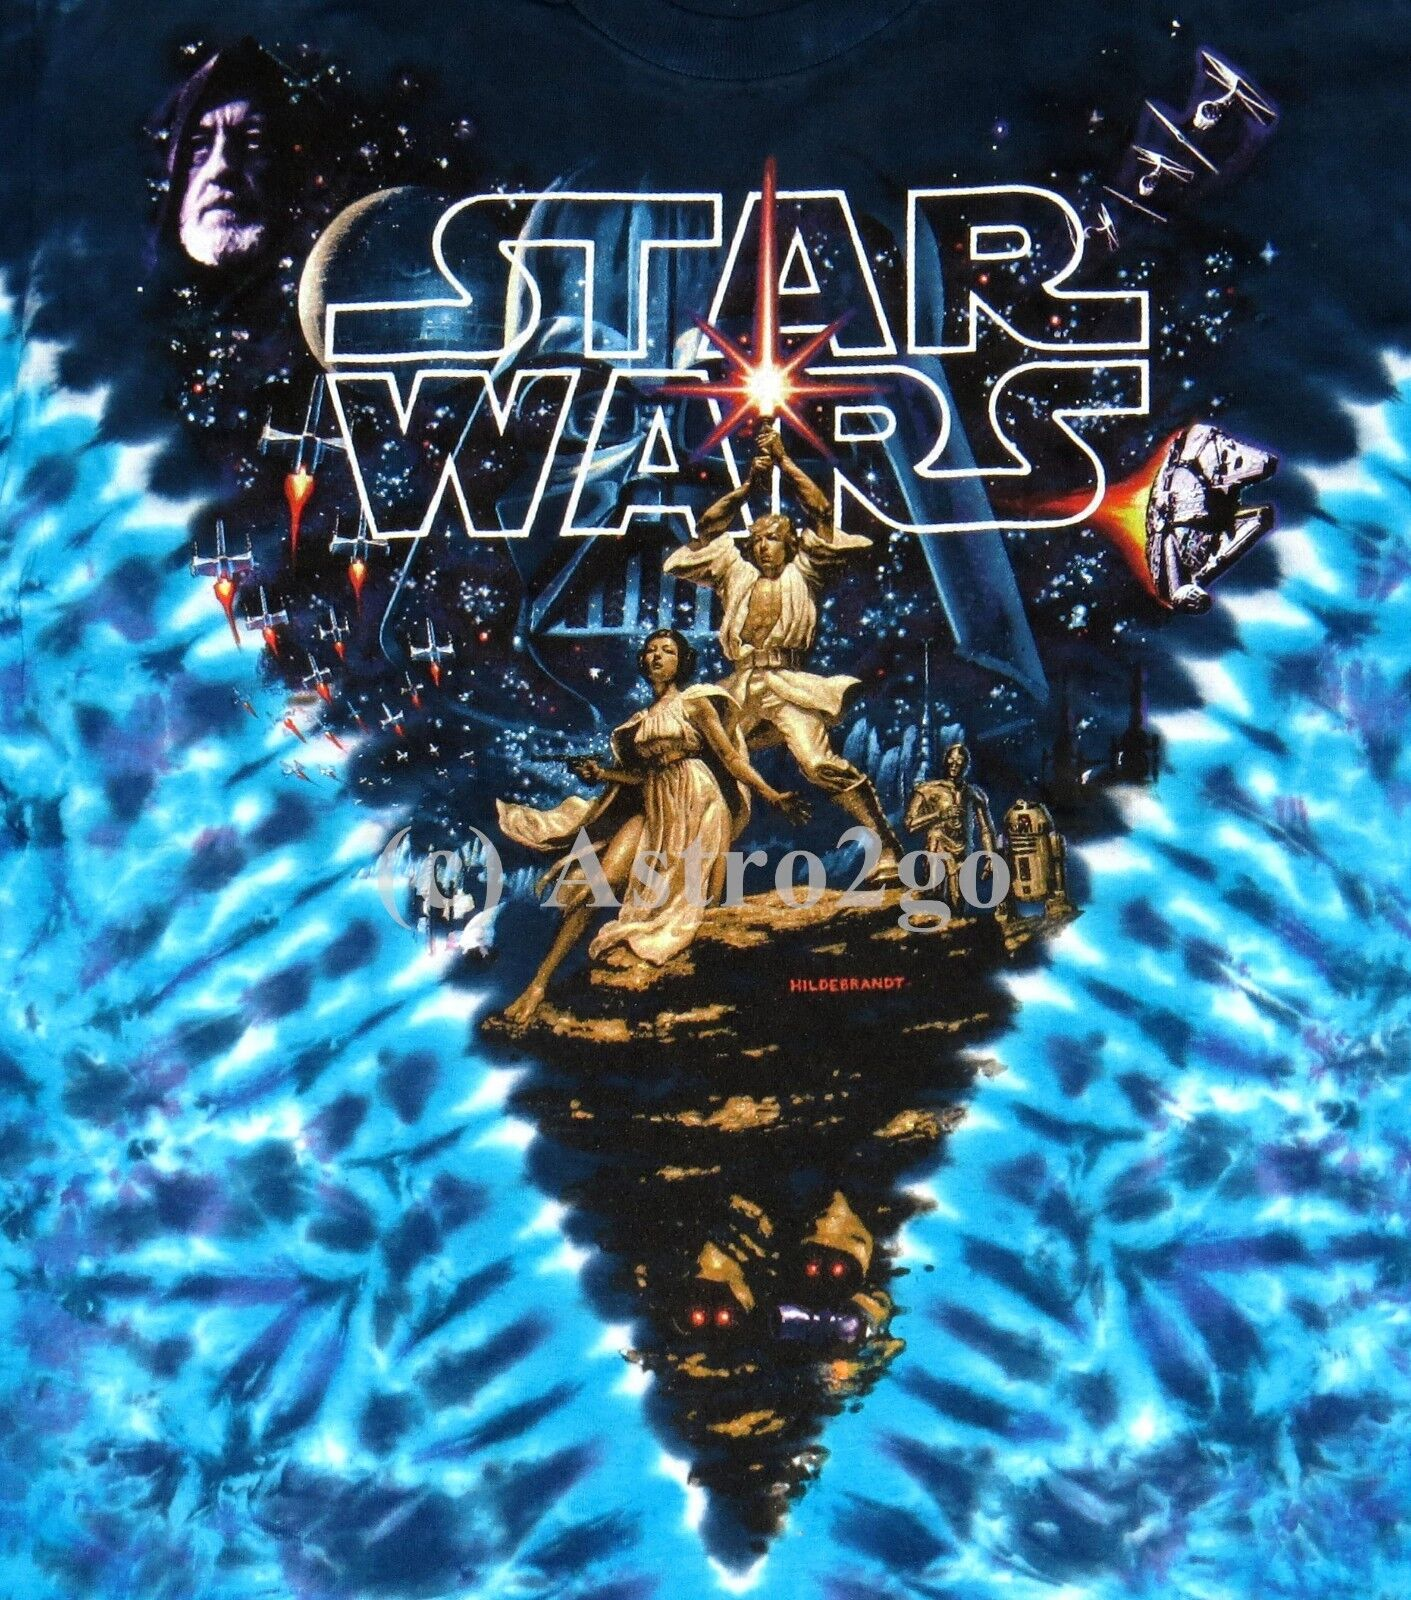 STAR WARS HILDEBRANDT MOVIE POSTER-Liquid Blue Tie dyed 2 si